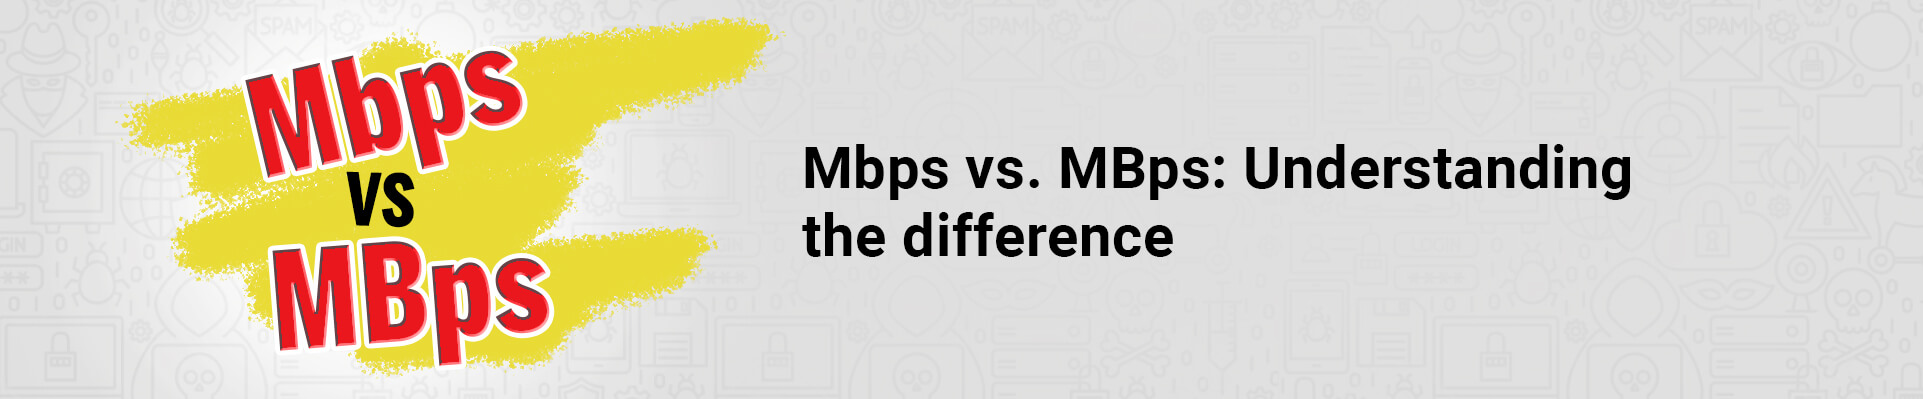 What is the Difference Between Mbps and MBps?